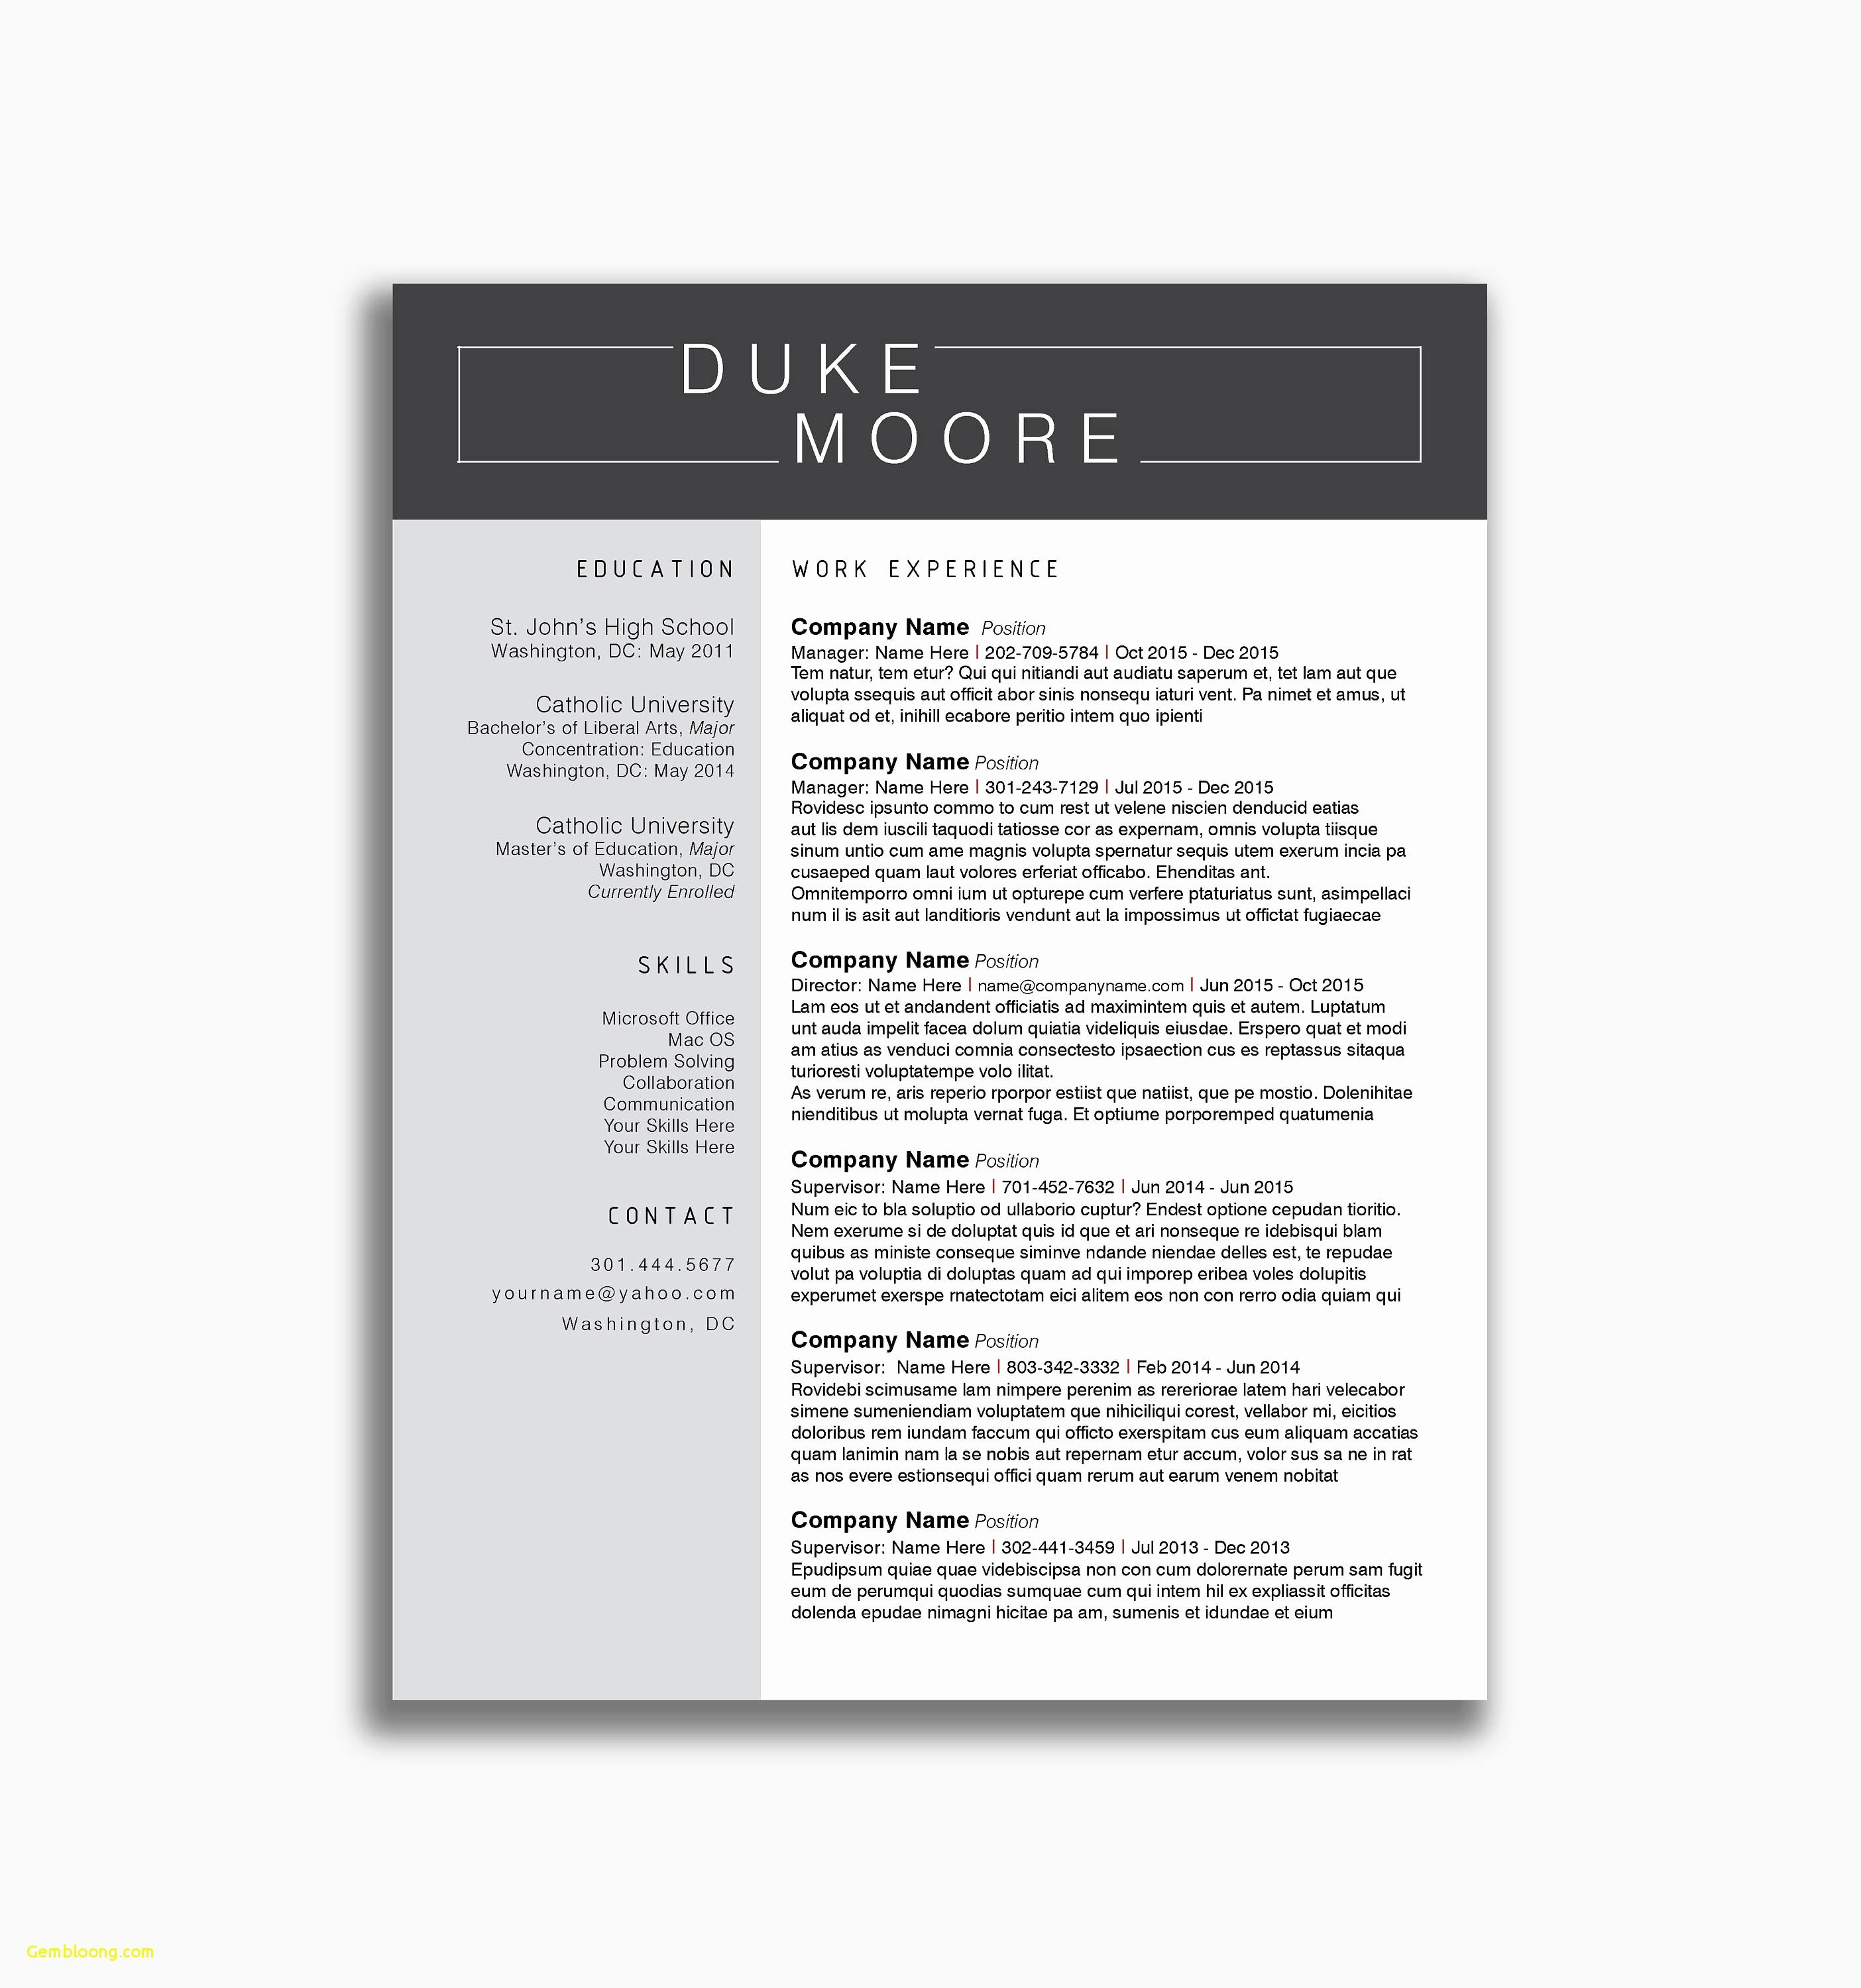 duke resume template example-Download Resume Template Beautiful Law Student Resume Template Best Resume Examples 0d 1-e